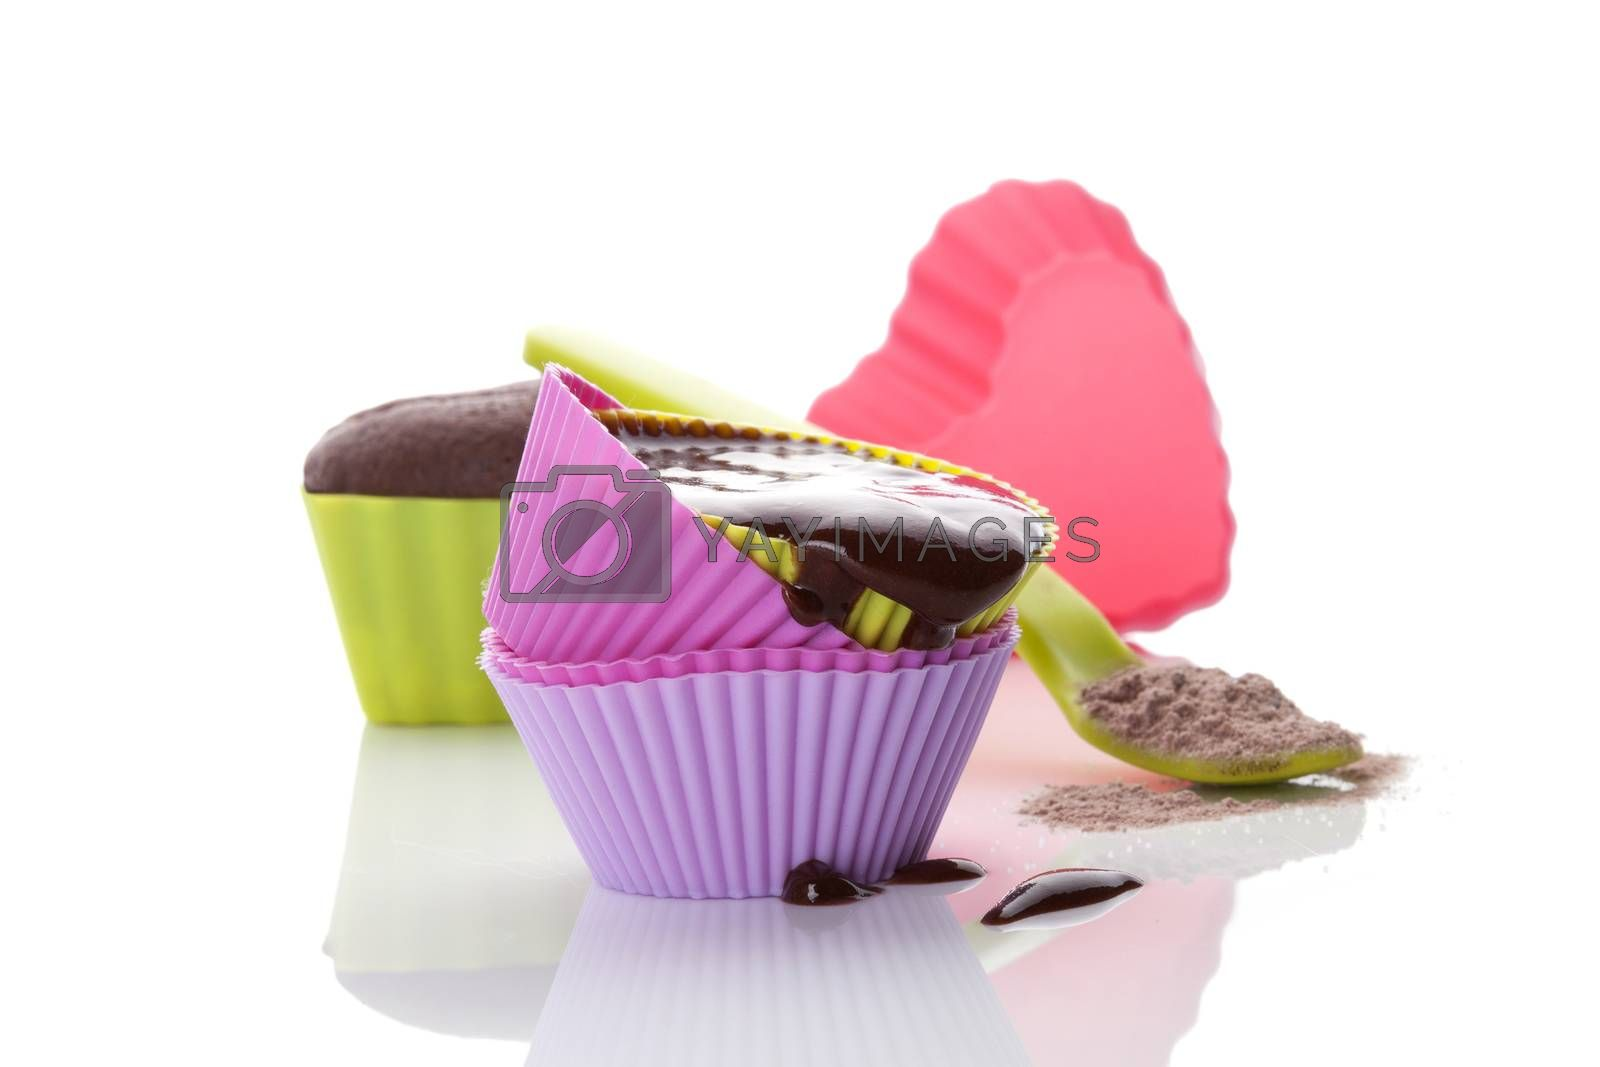 Cupcake chocolate mixture in neon colored baking forms isolated on white background. Culinary cupcakes baking.